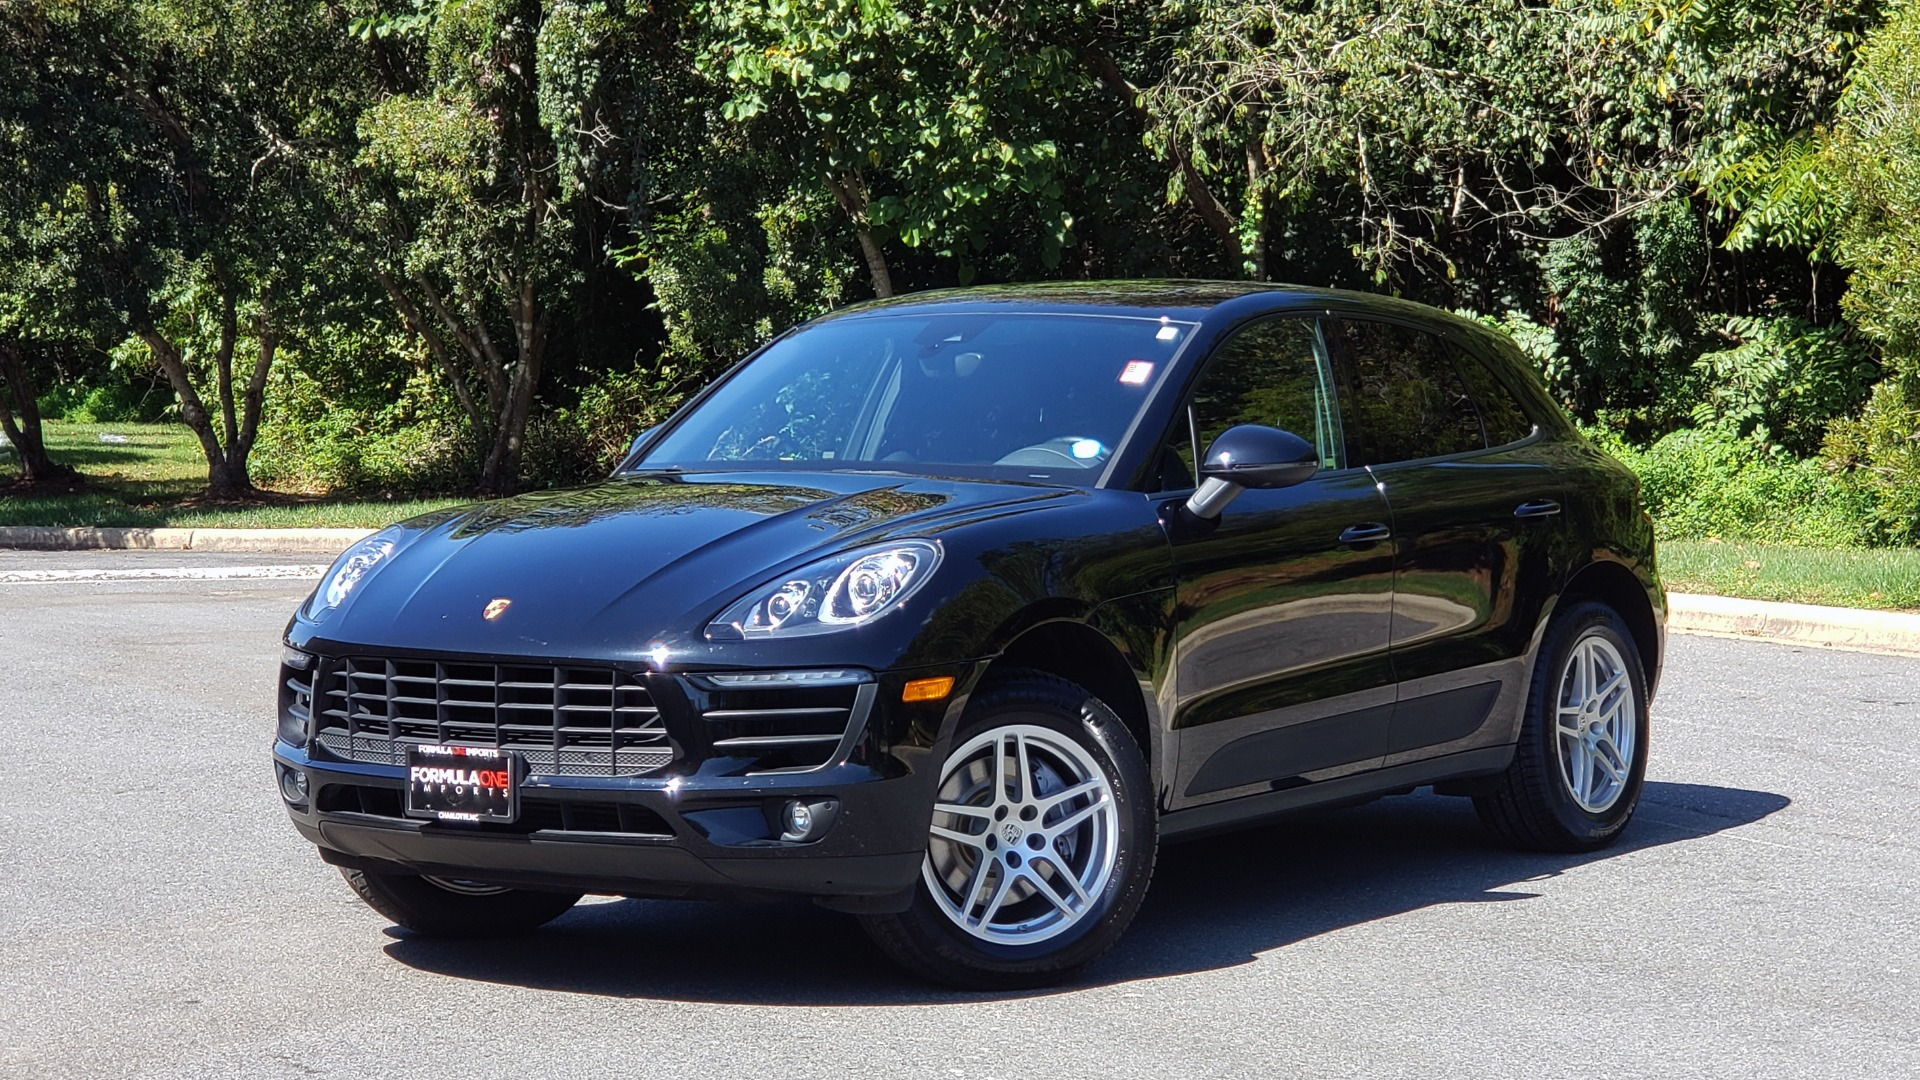 Used 2018 Porsche MACAN PREMIUM PKG PLUS / NAV / PDK / BOSE / REARVIEW for sale Sold at Formula Imports in Charlotte NC 28227 4